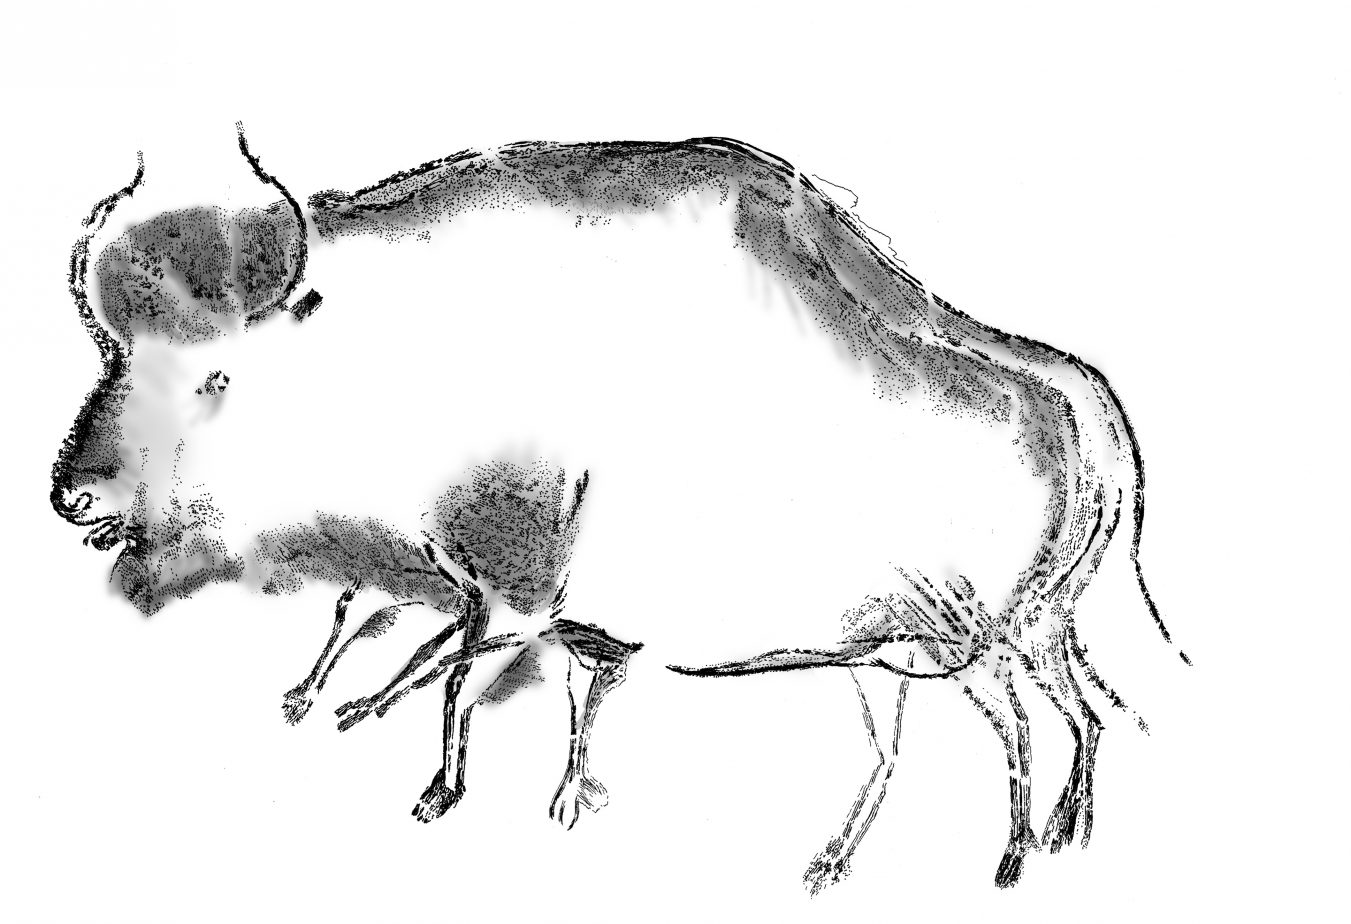 Reproduction of the blurred black charcoal drawing of a steppe bison (Bison priscus) from the Aurignacian period - Chauvet-Pont d'Arc cave (Ardèche, France). Credit: Carole Fritz and Gilles Tosello